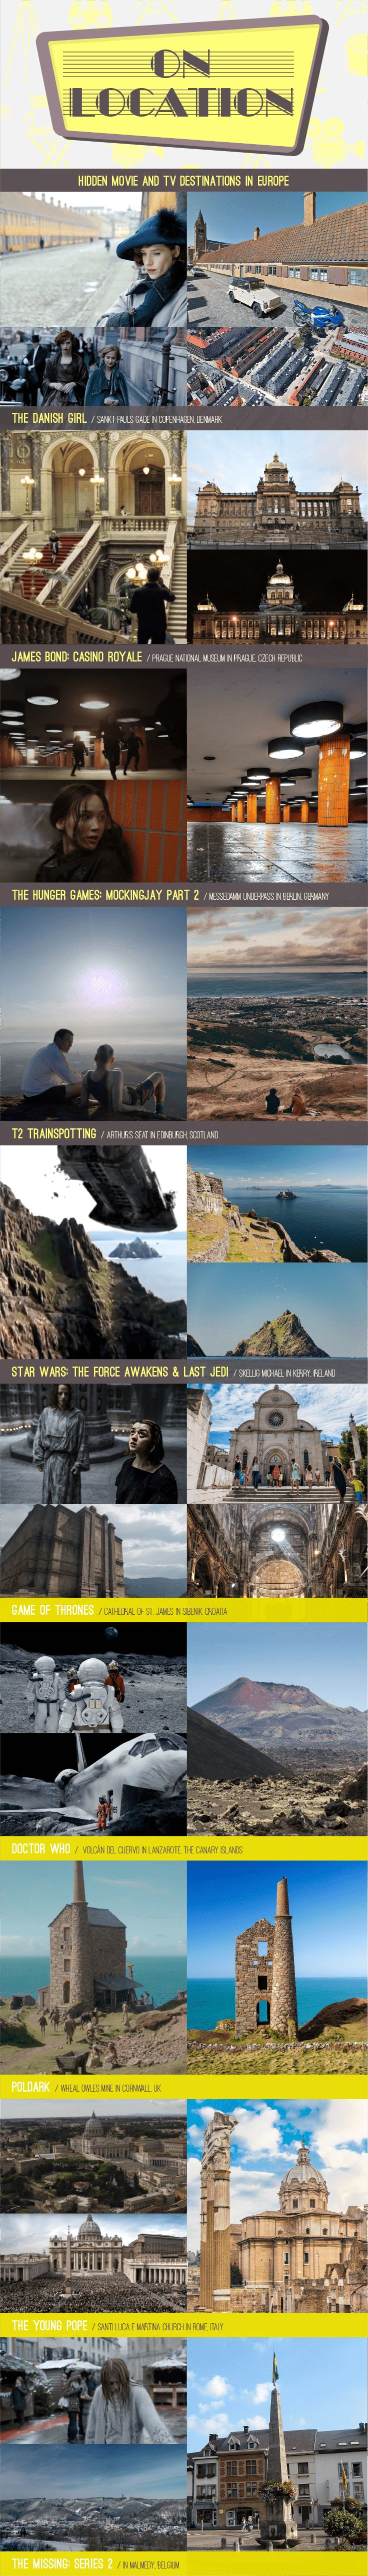 25 TV And Movie Shoot Locations In Europe Worth Visiting - Infographic